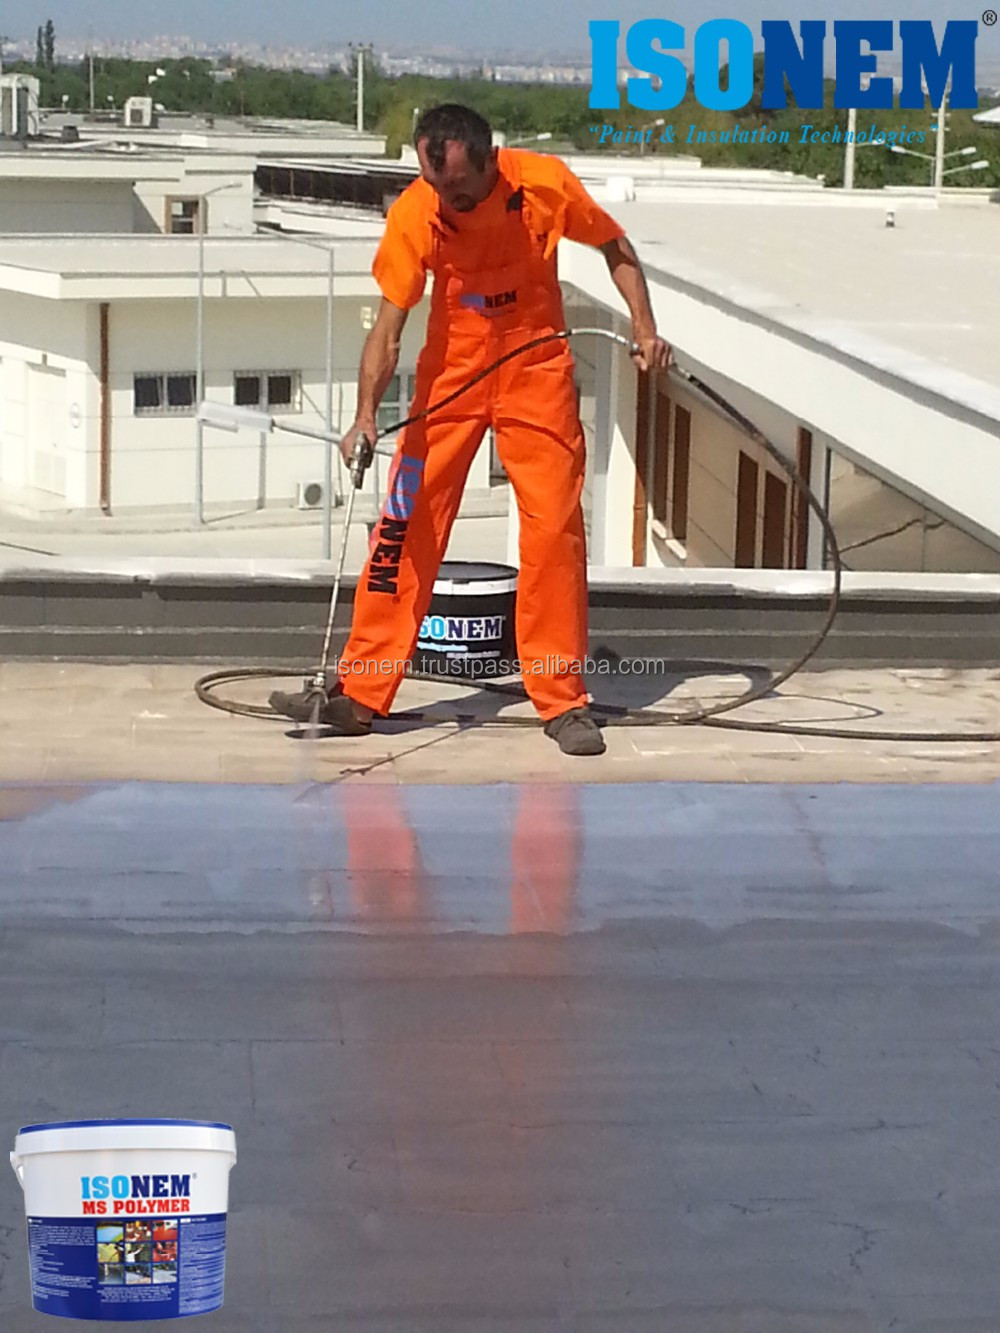 HOT SELLING!!! CONCRETE WATERPROOFING MATERIAL FOR ROOF, FLOOR, TERRACE